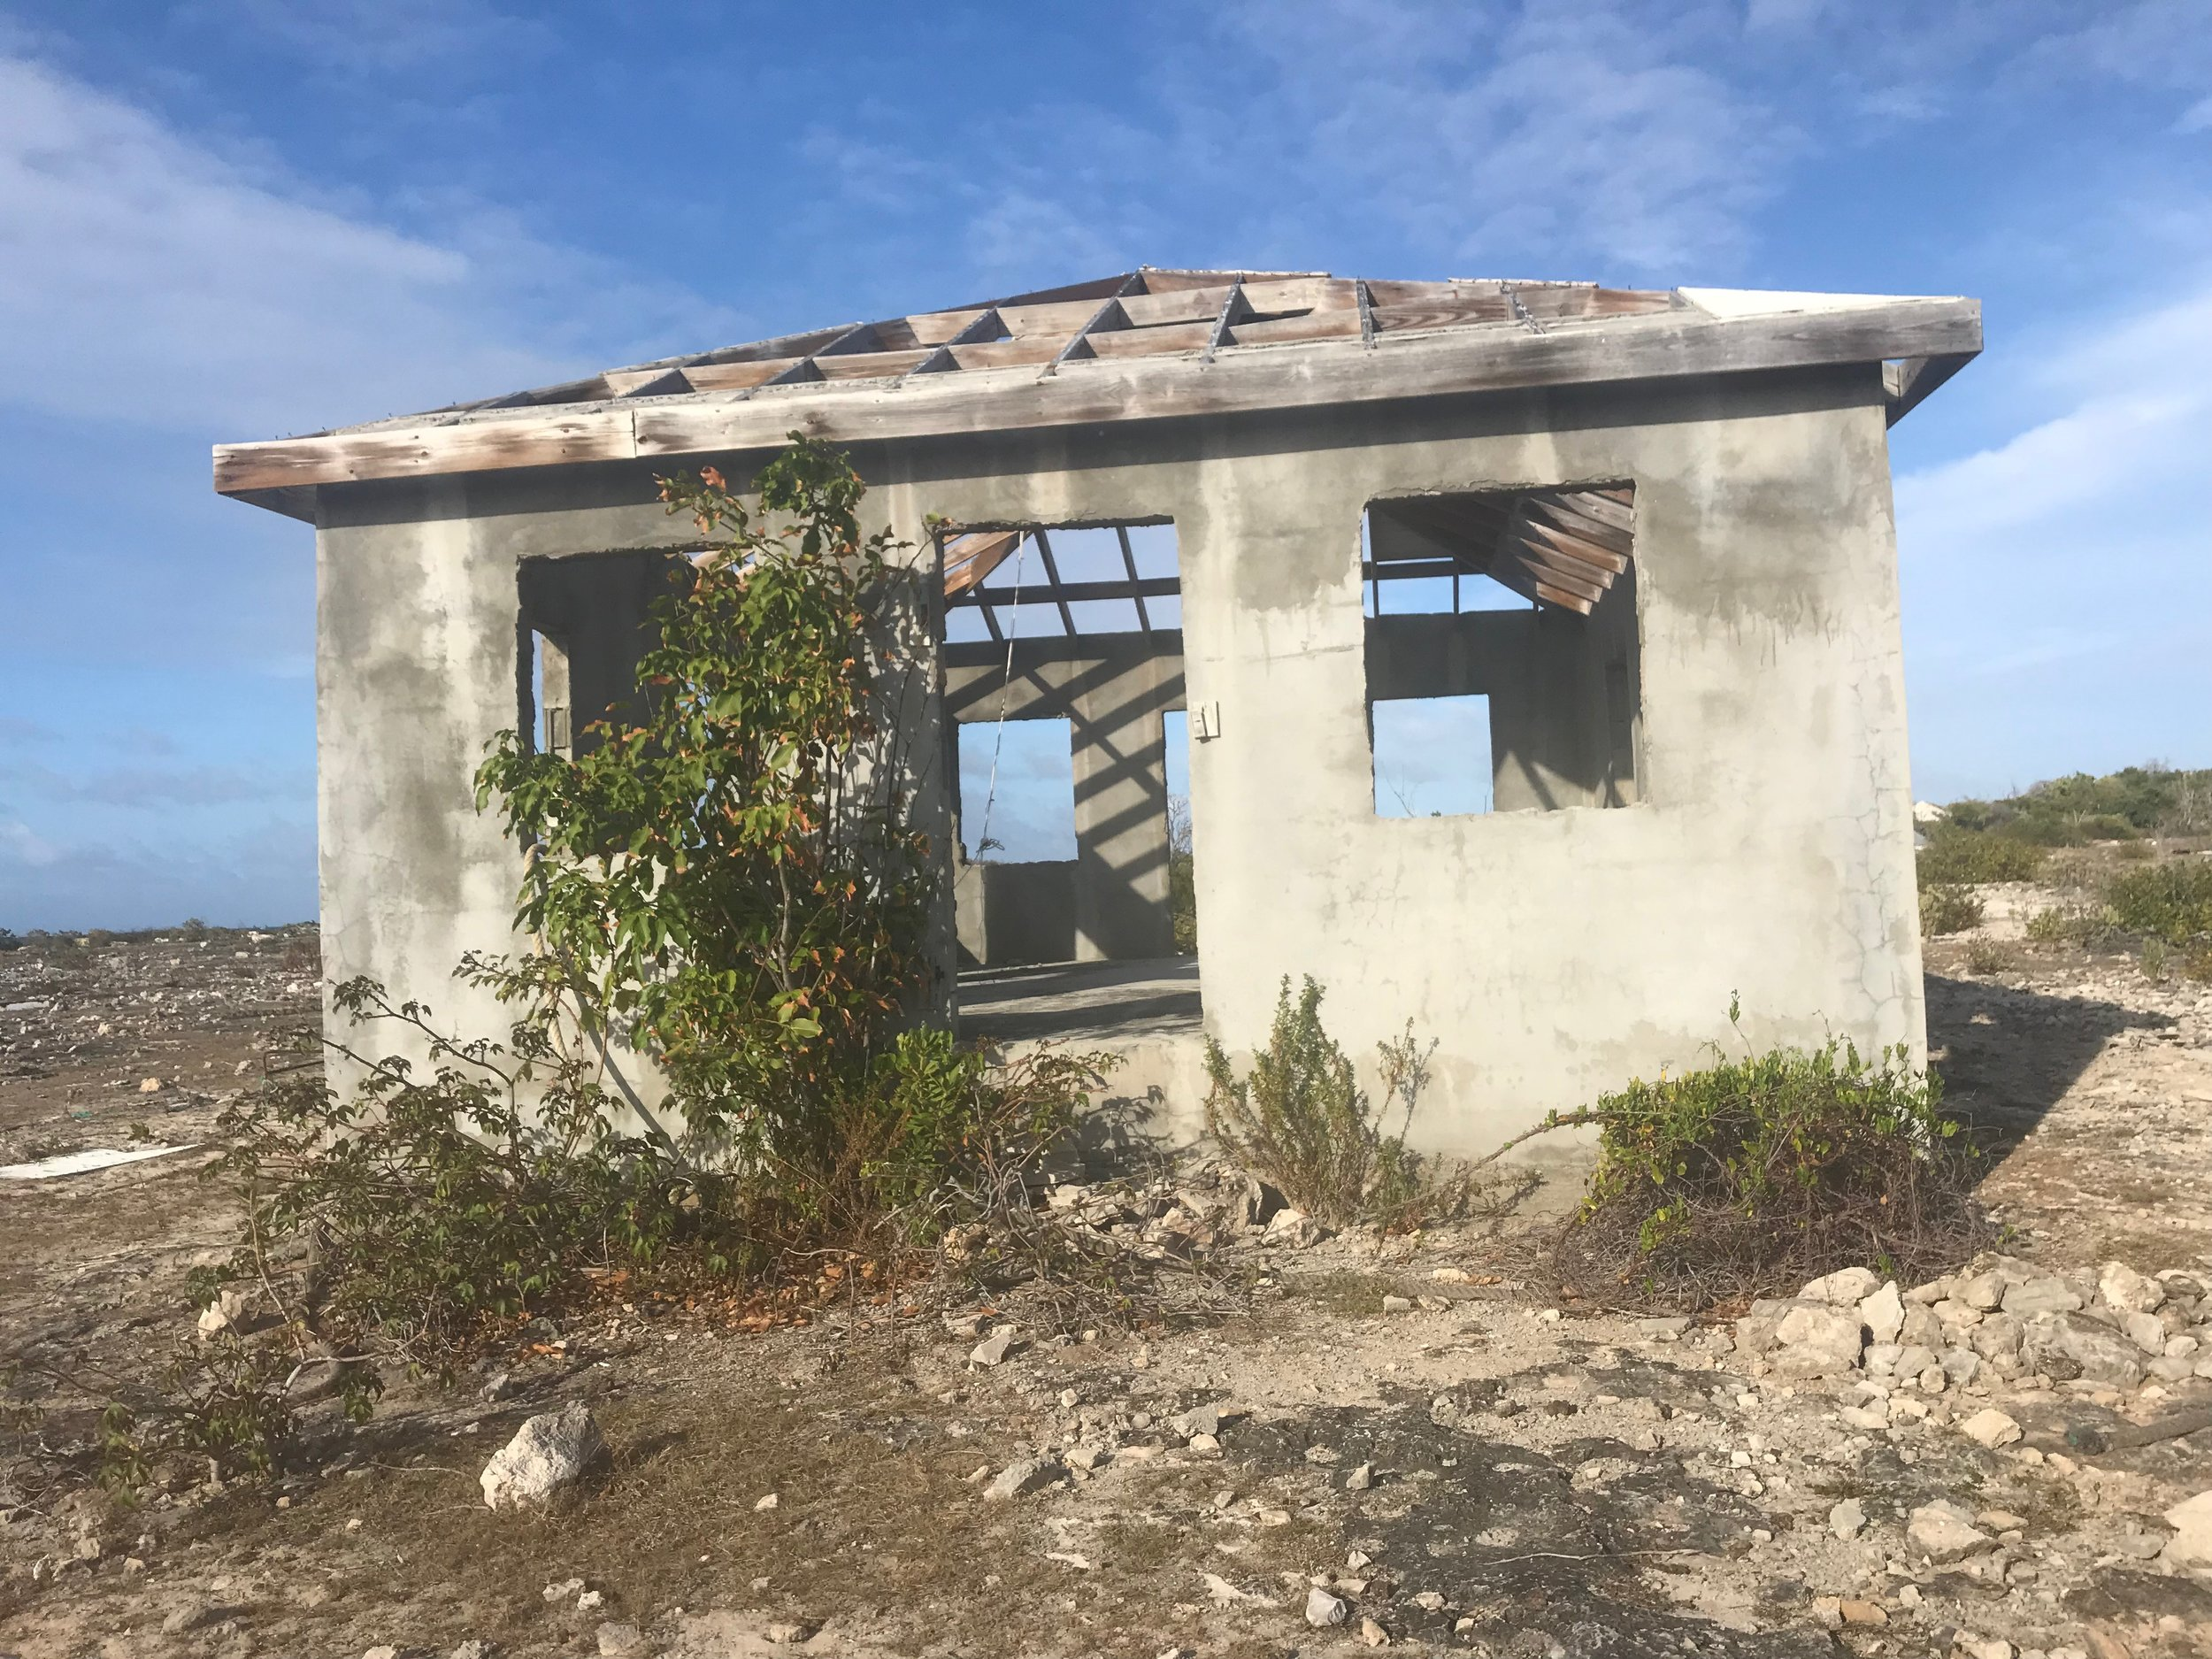 A home before Irma